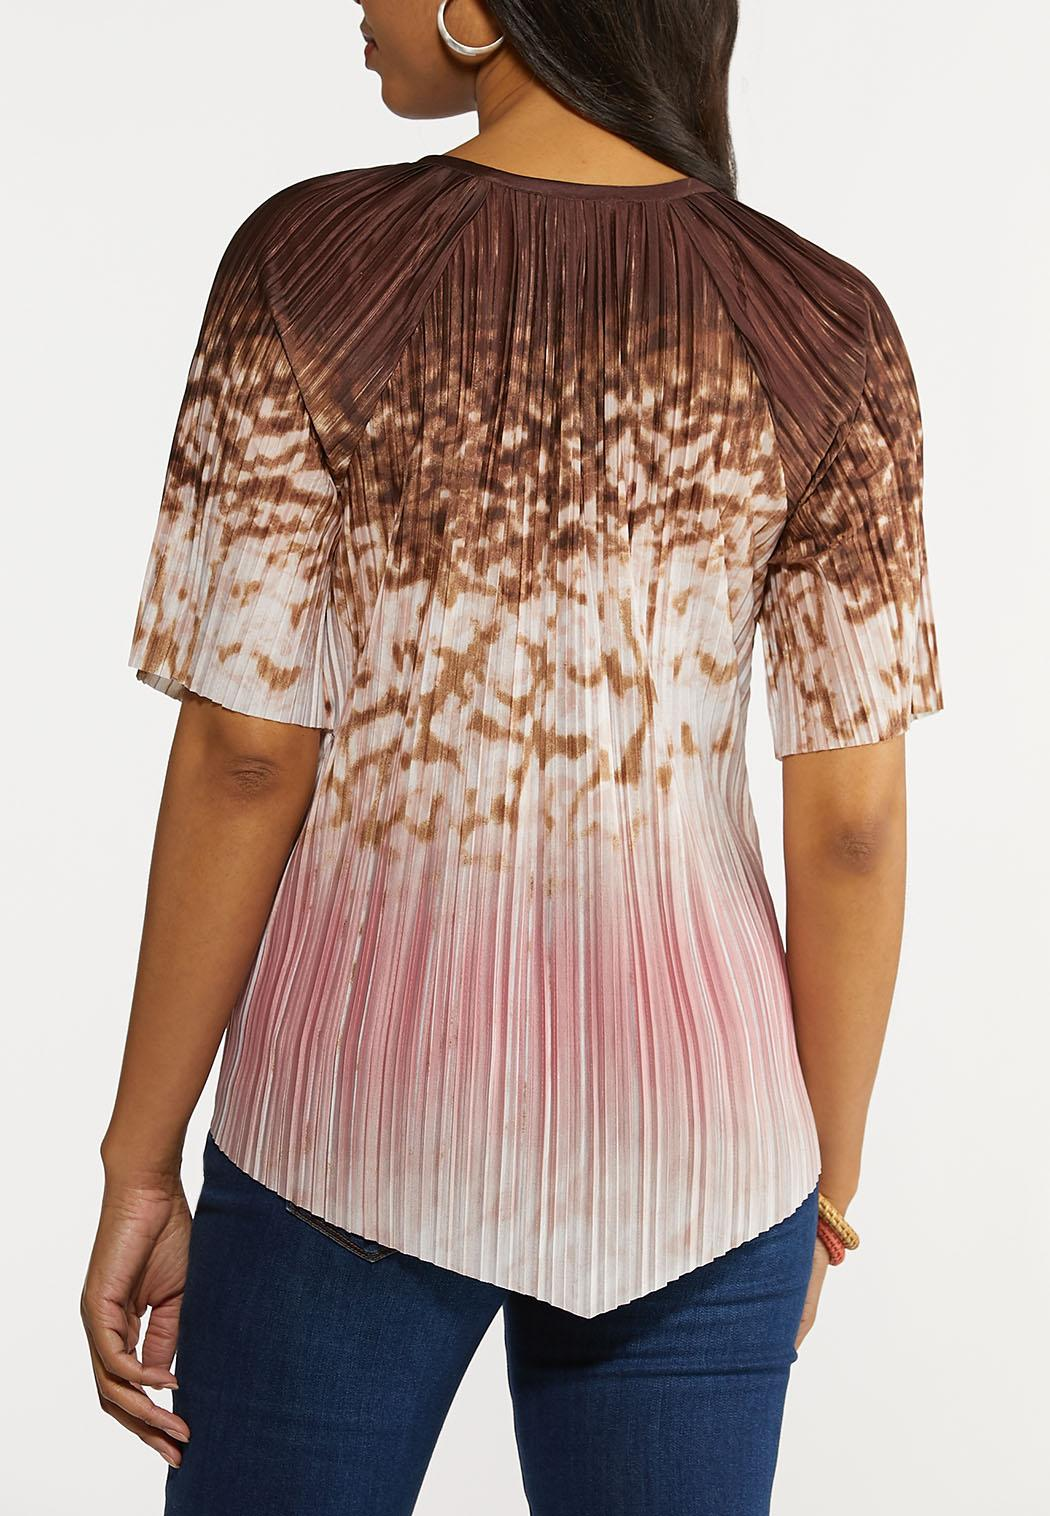 Plus Size Pleated Brown Dye Top (Item #44266430)